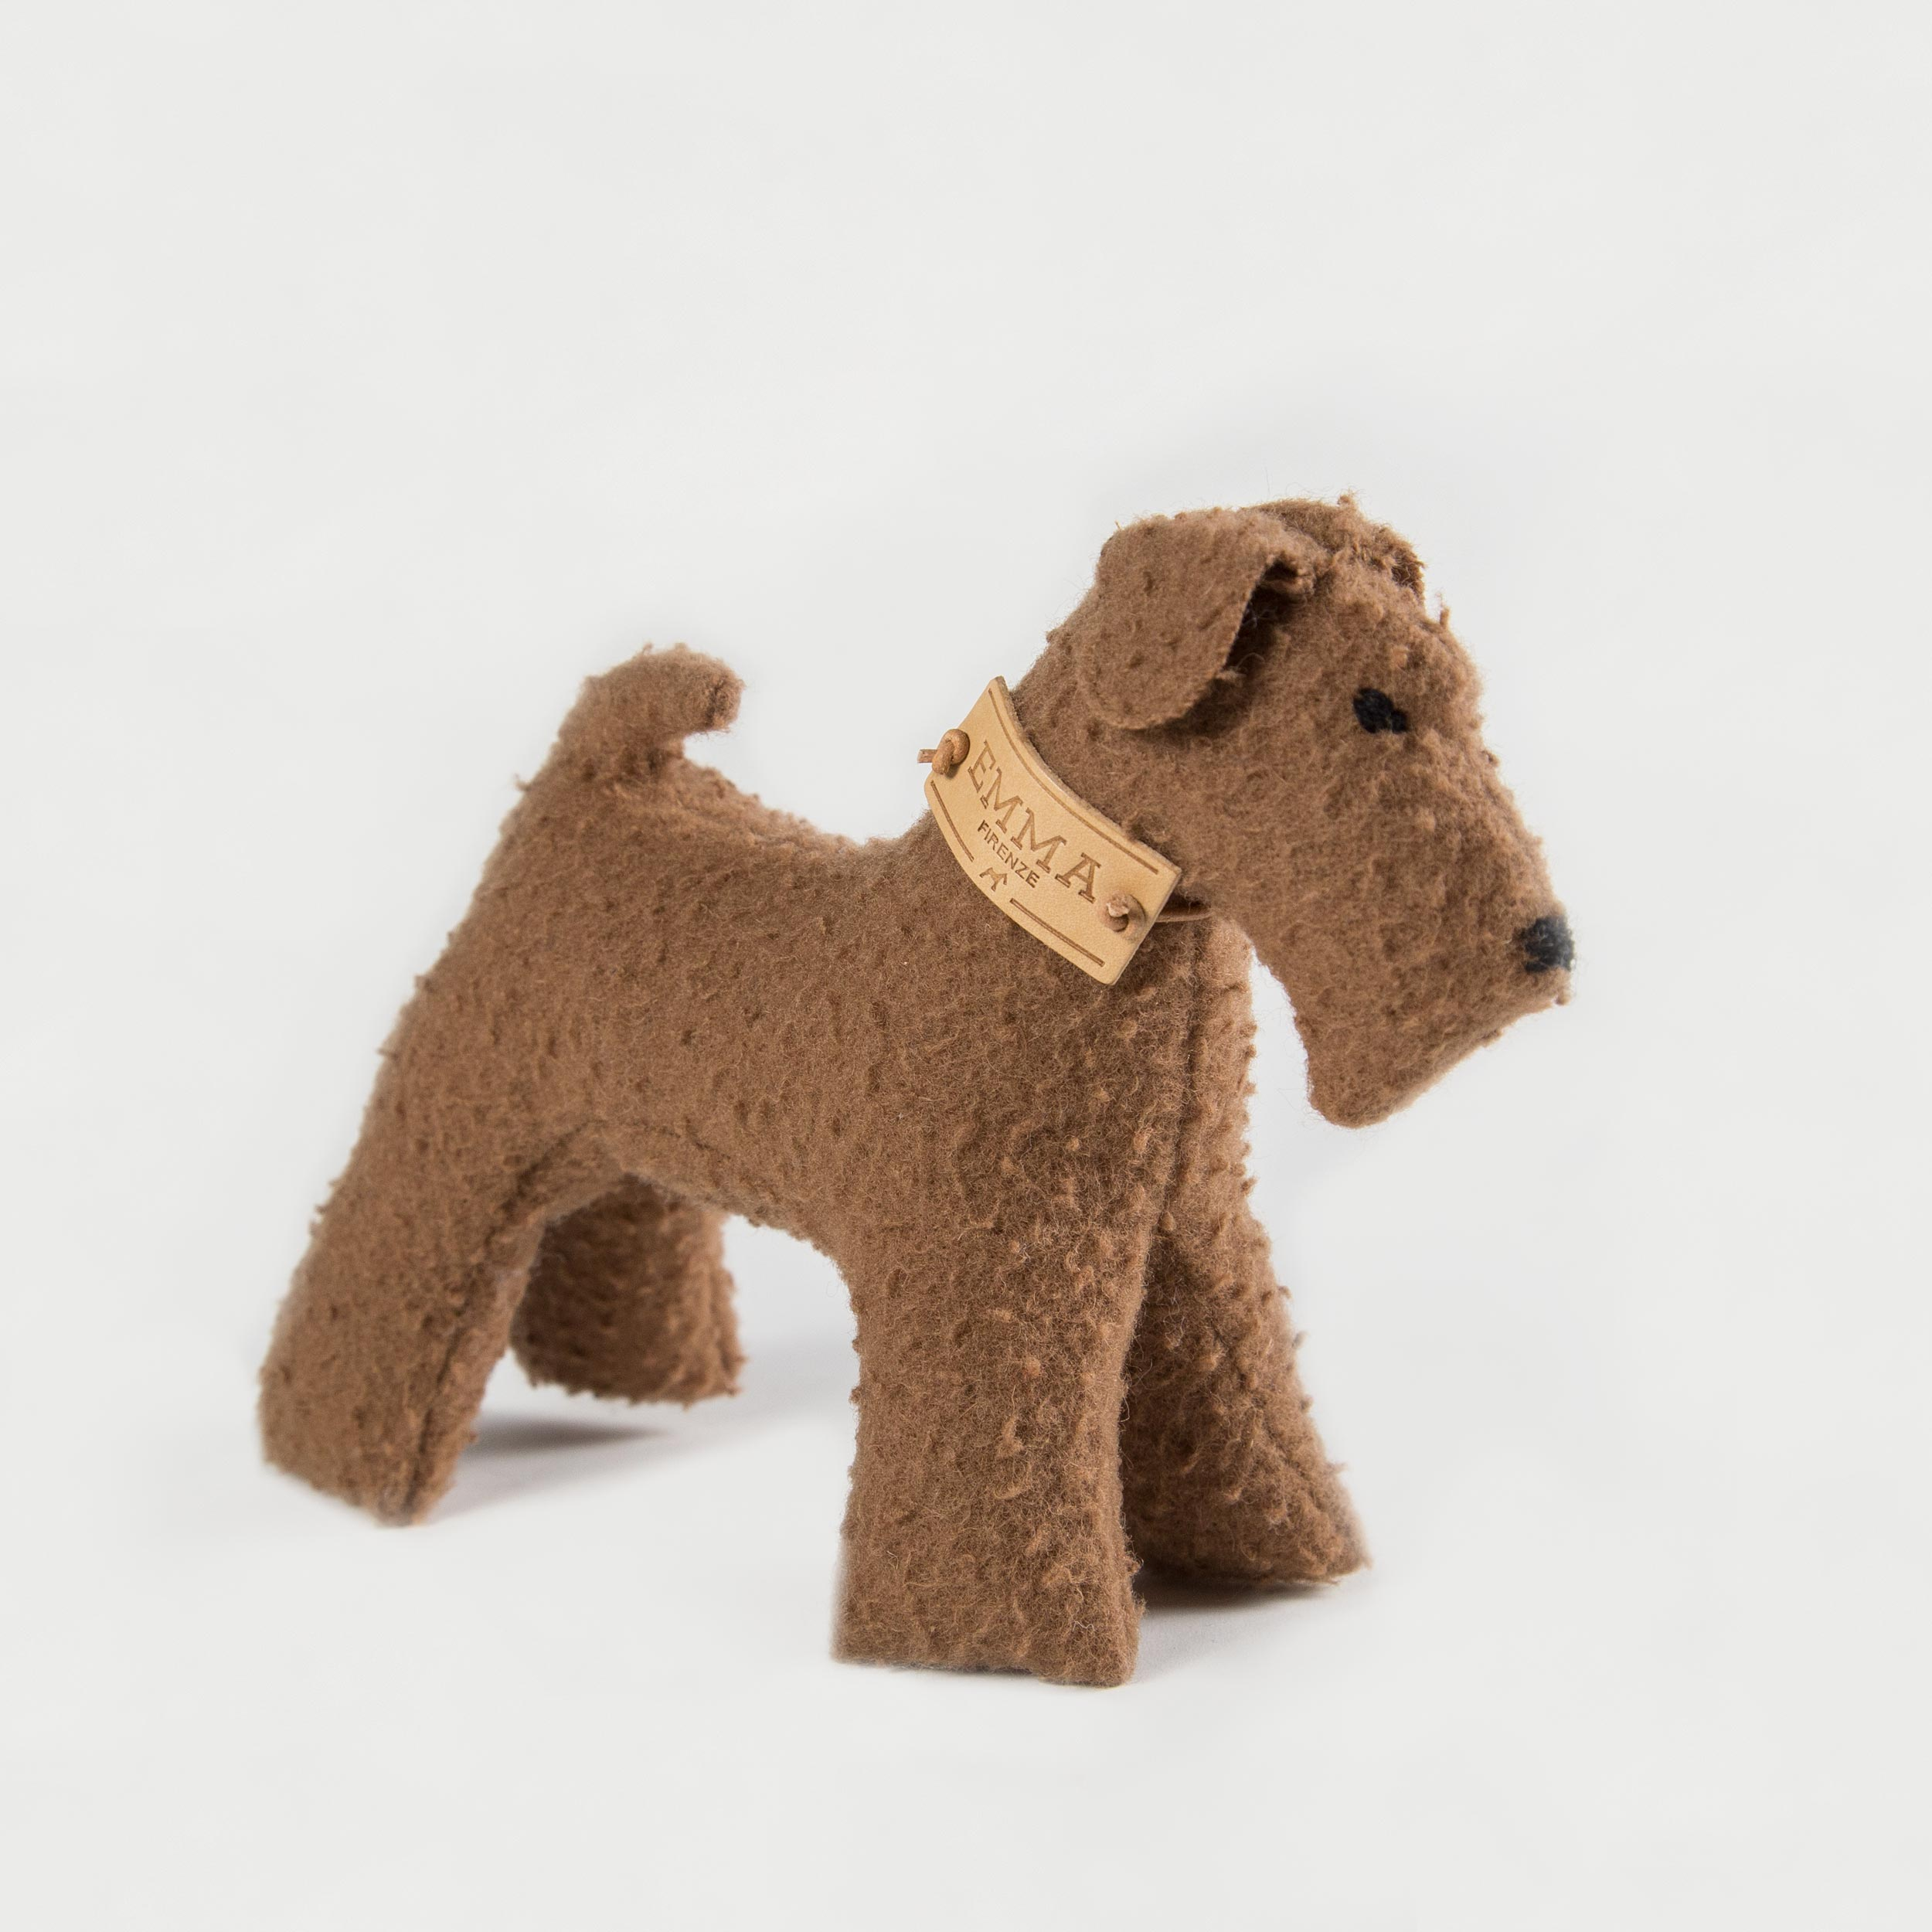 gift toy in brown casentino fabric